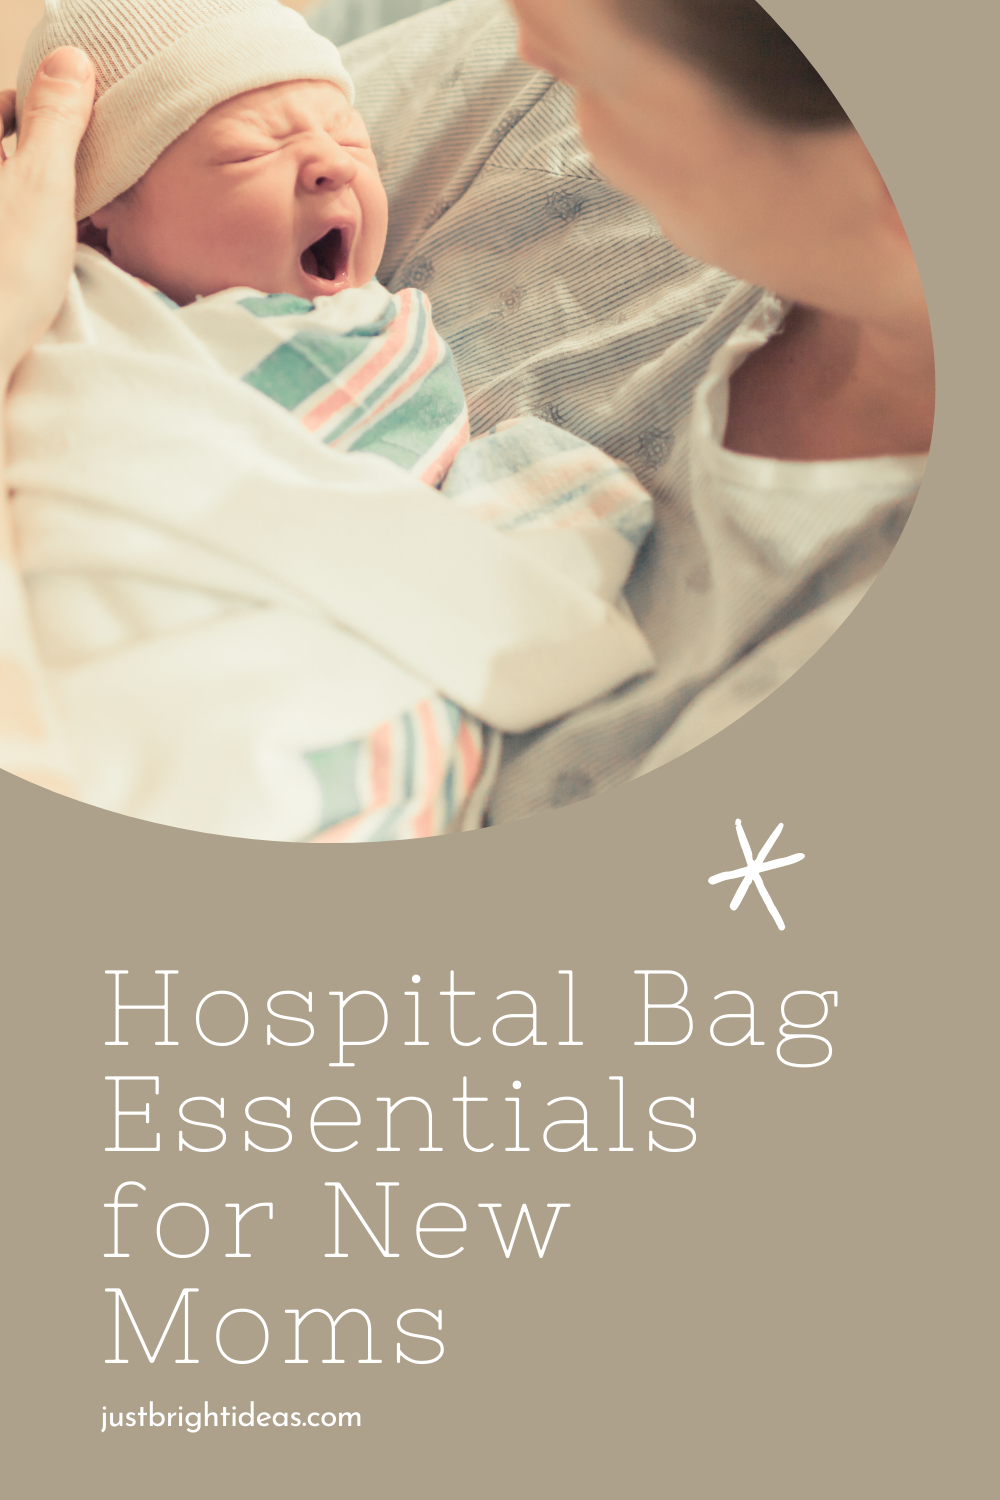 If you're expecting a baby and wondering what you should pack in your hospital bag to be fully prepared and comfortable during labor and delivery check out our budget friendly essentials checklist!